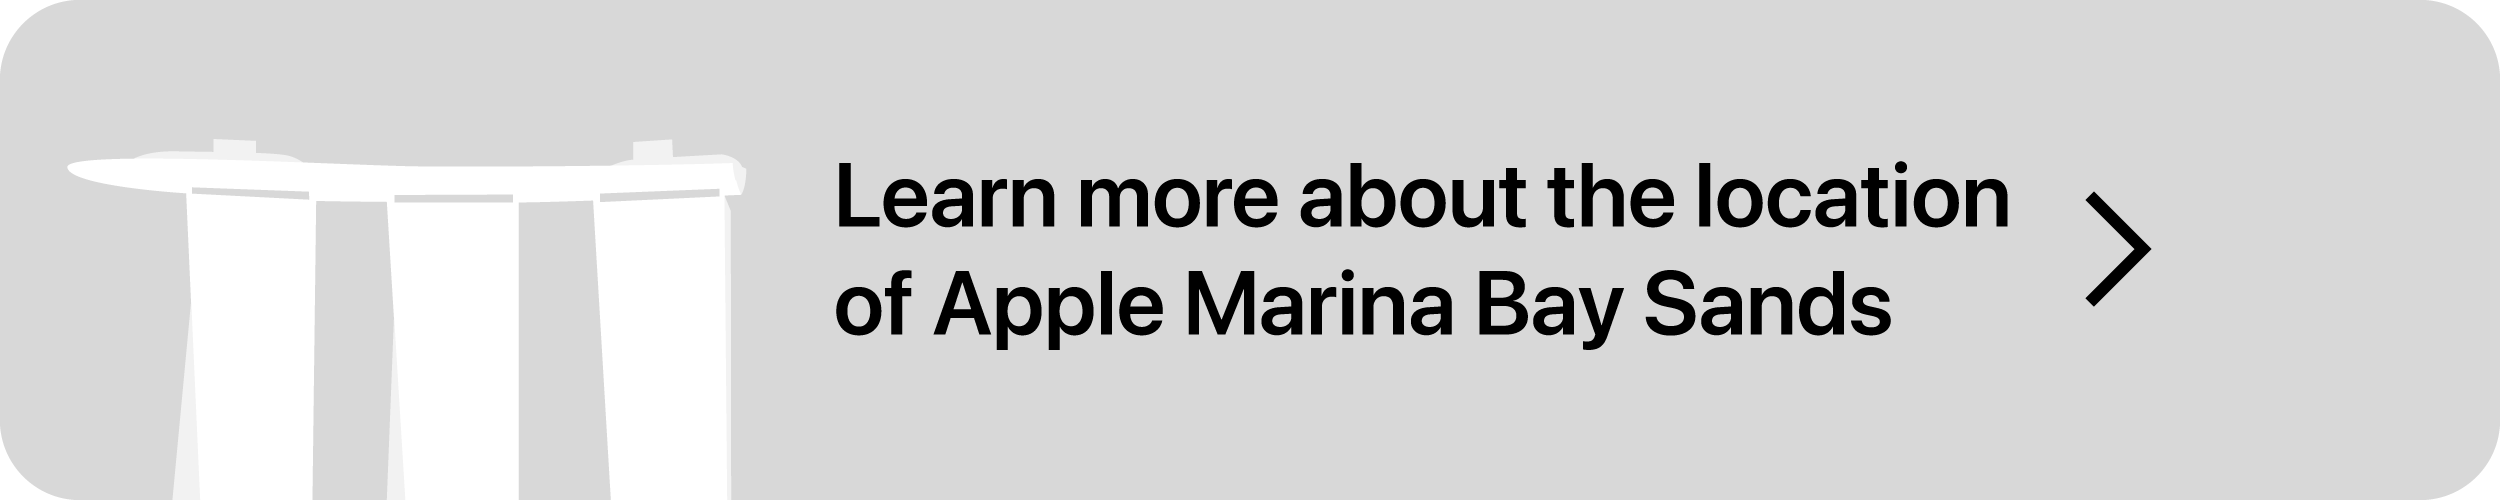 Click here to learn more about the location of Apple Marina Bay Sands